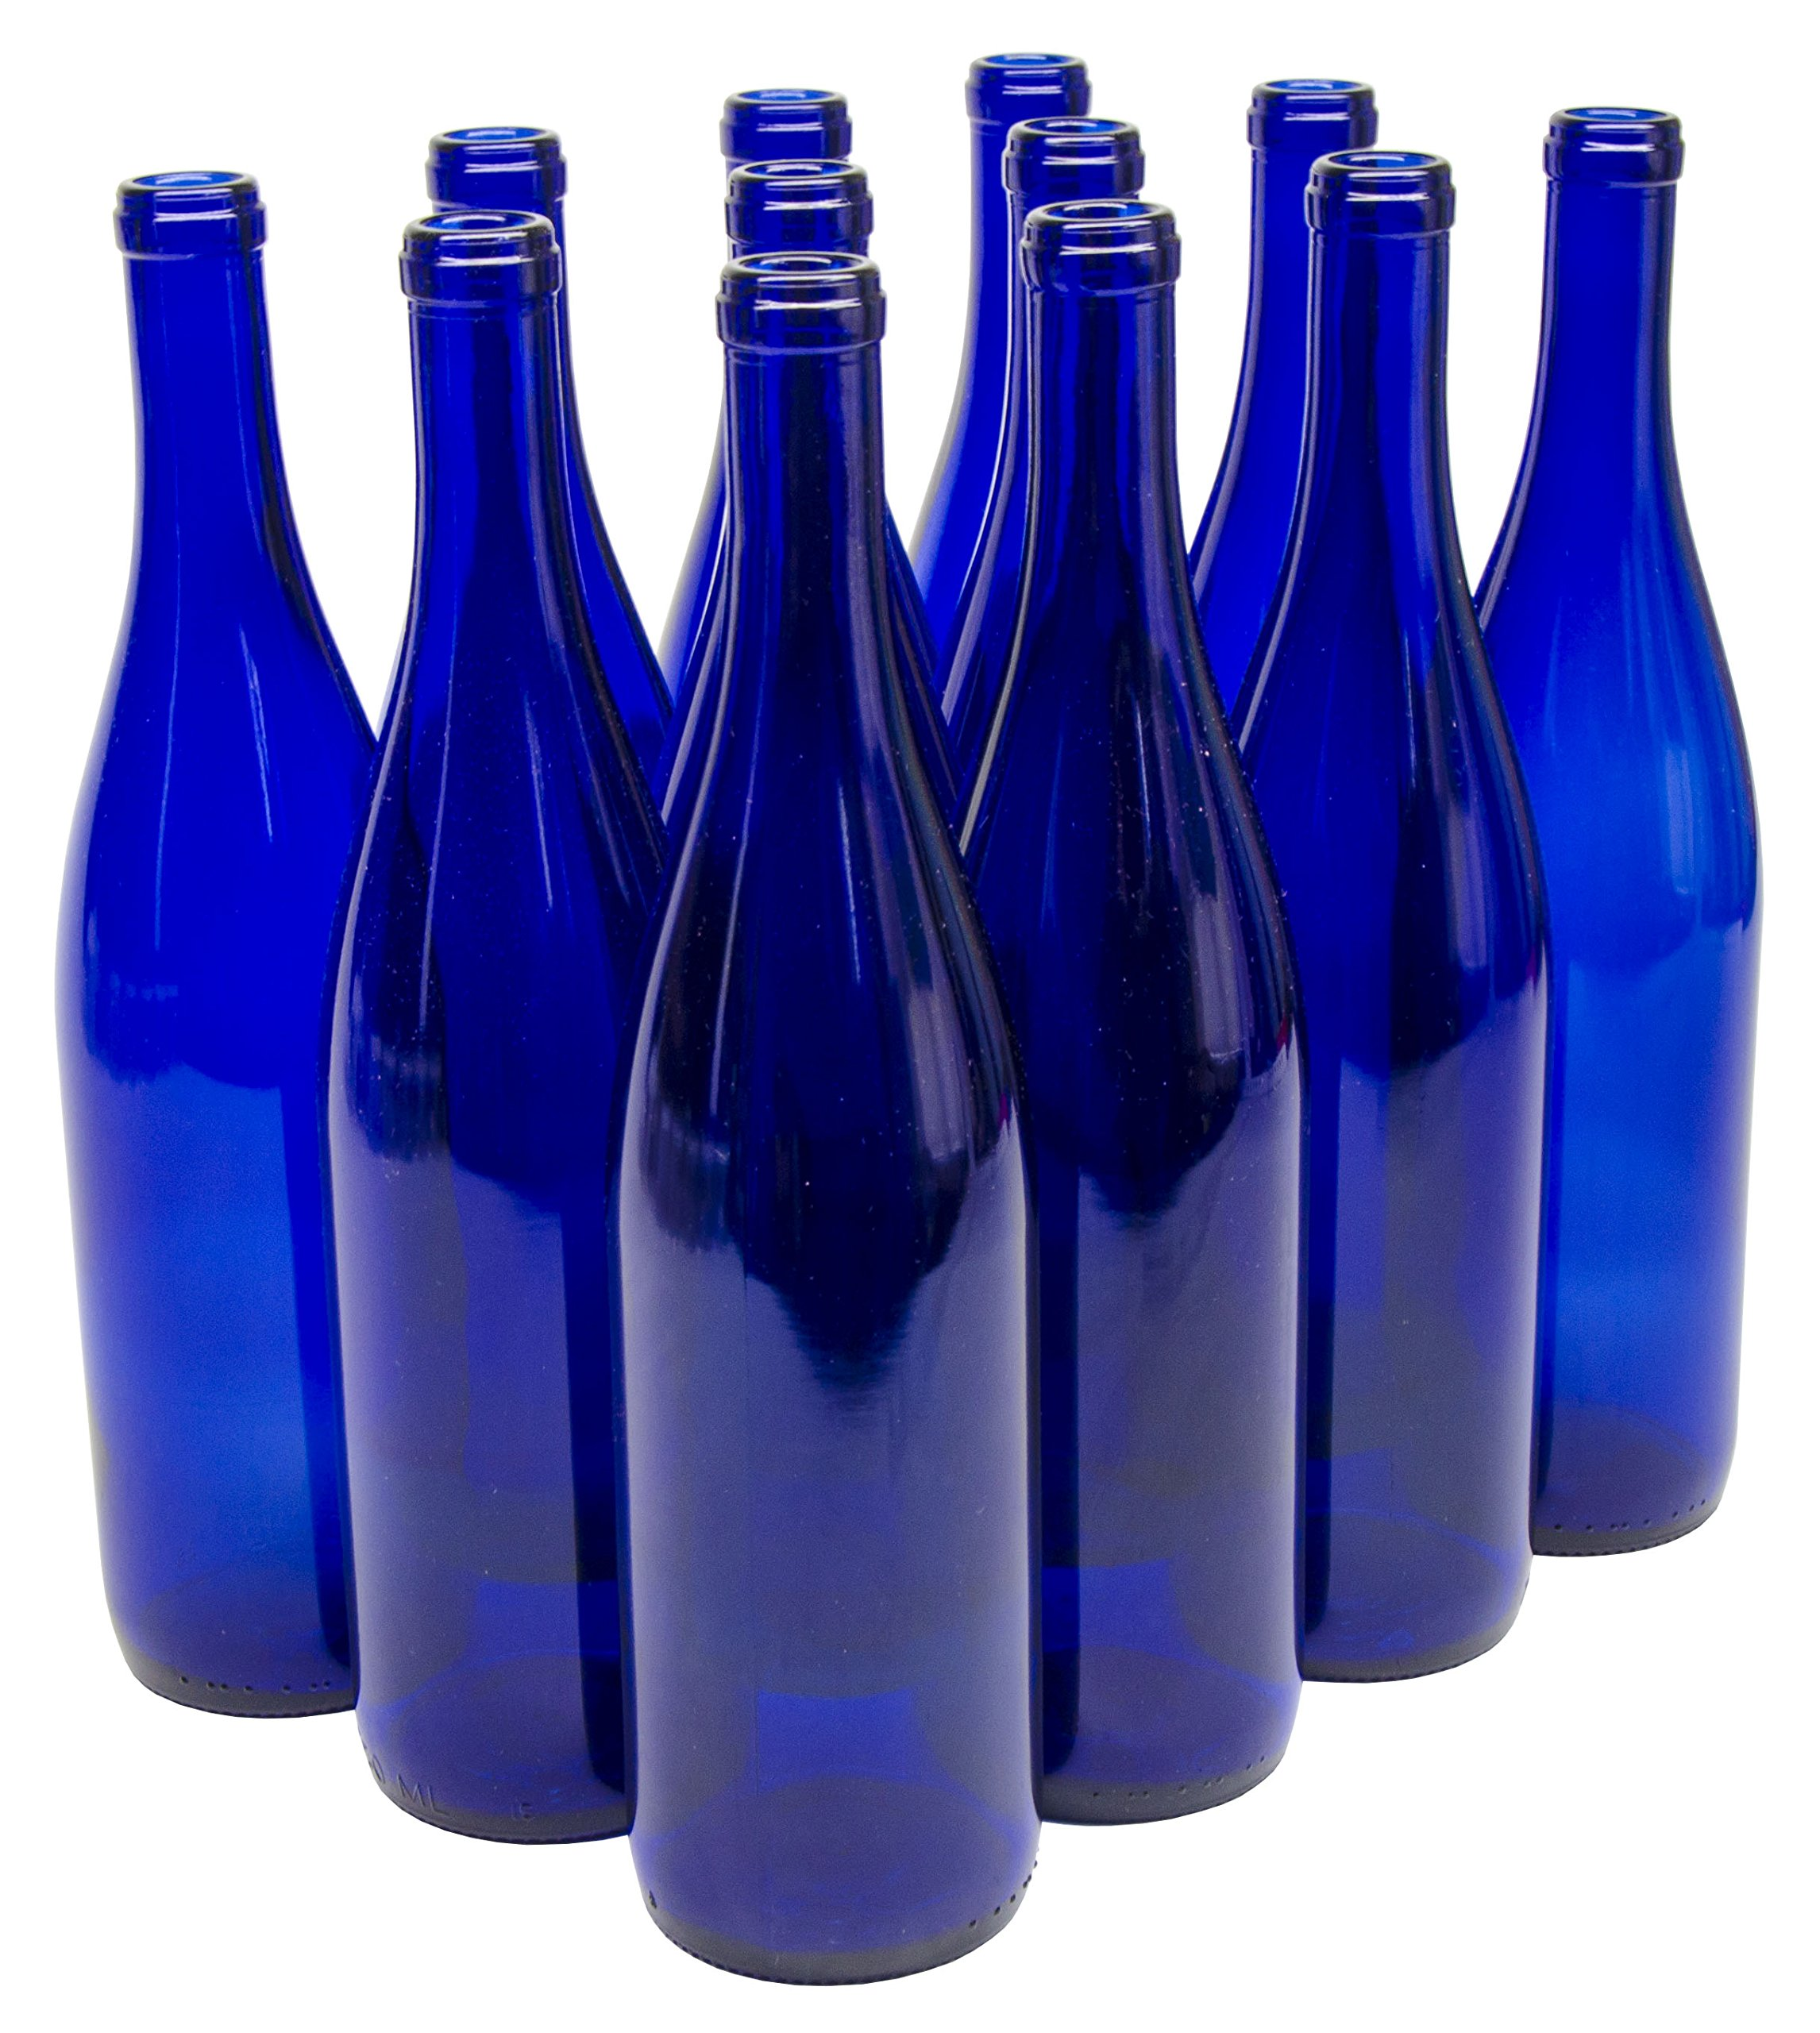 North Mountain Supply 750ml Glass California Hock Wine Bottle Flat-Bottomed Cork Finish - Case of 12 - Cobalt Blue